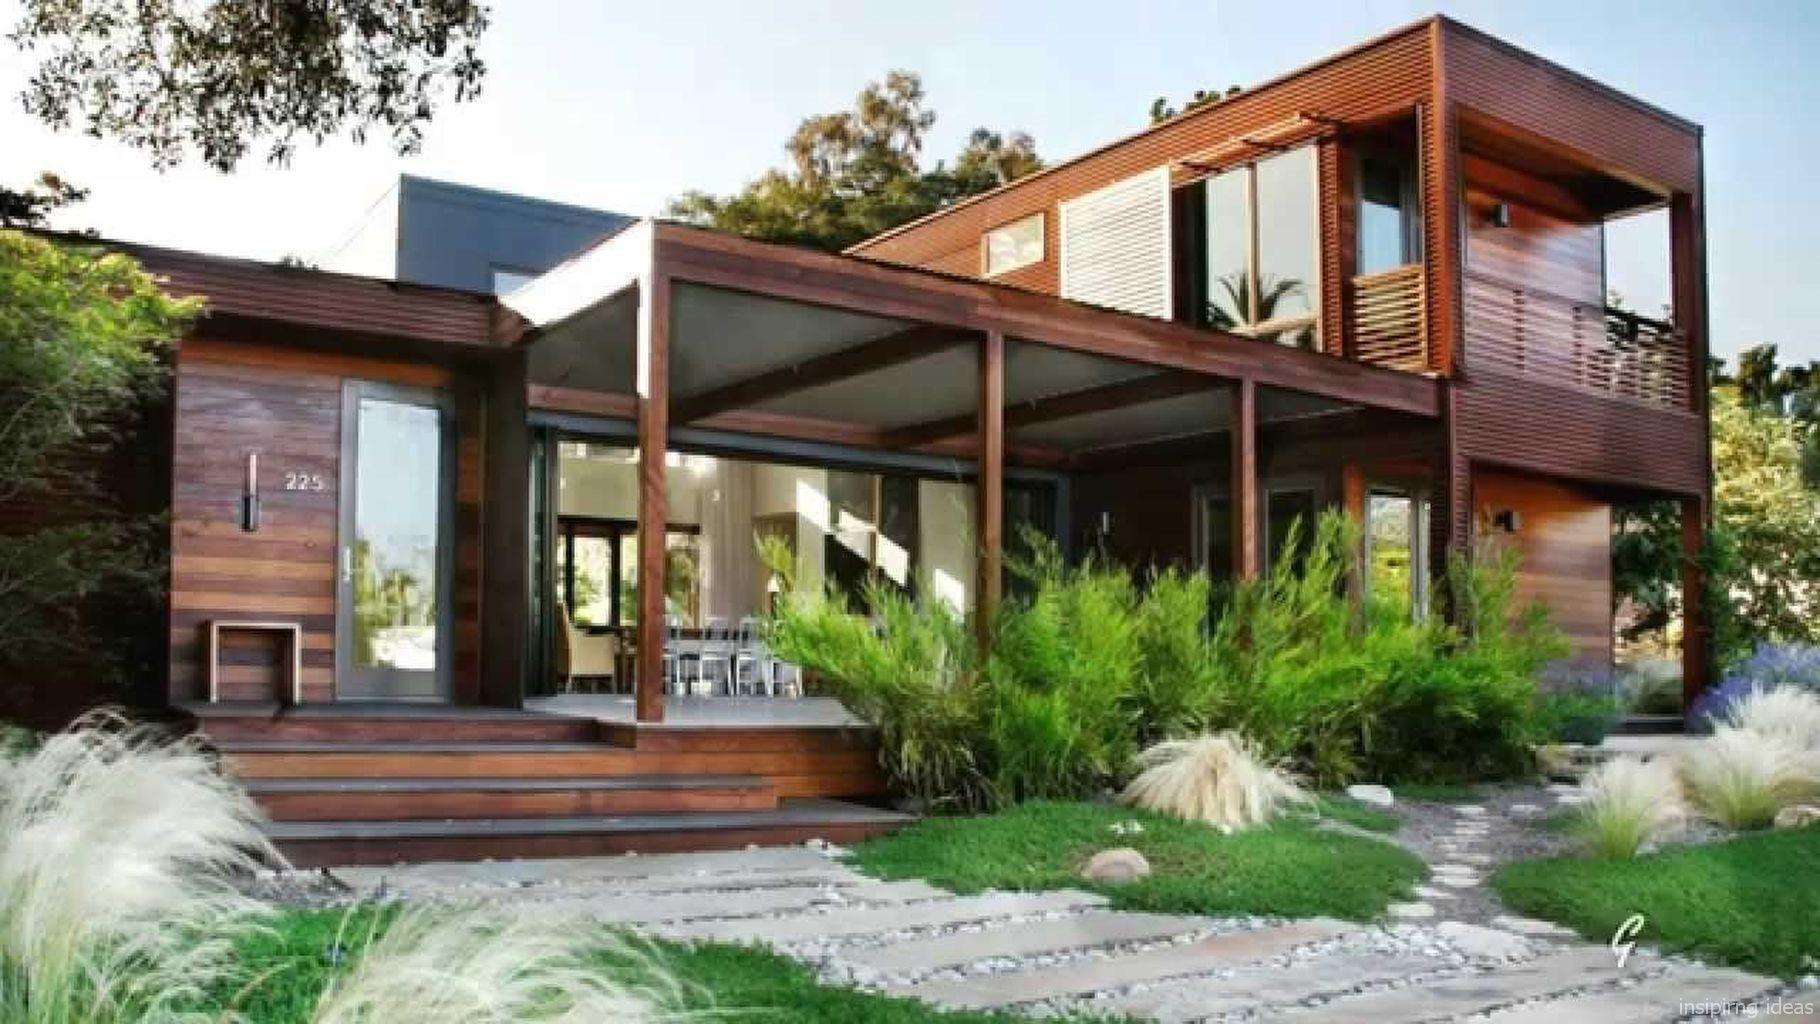 Cool modern container house design ideas https roomaholic also exterior garden and rh pinterest